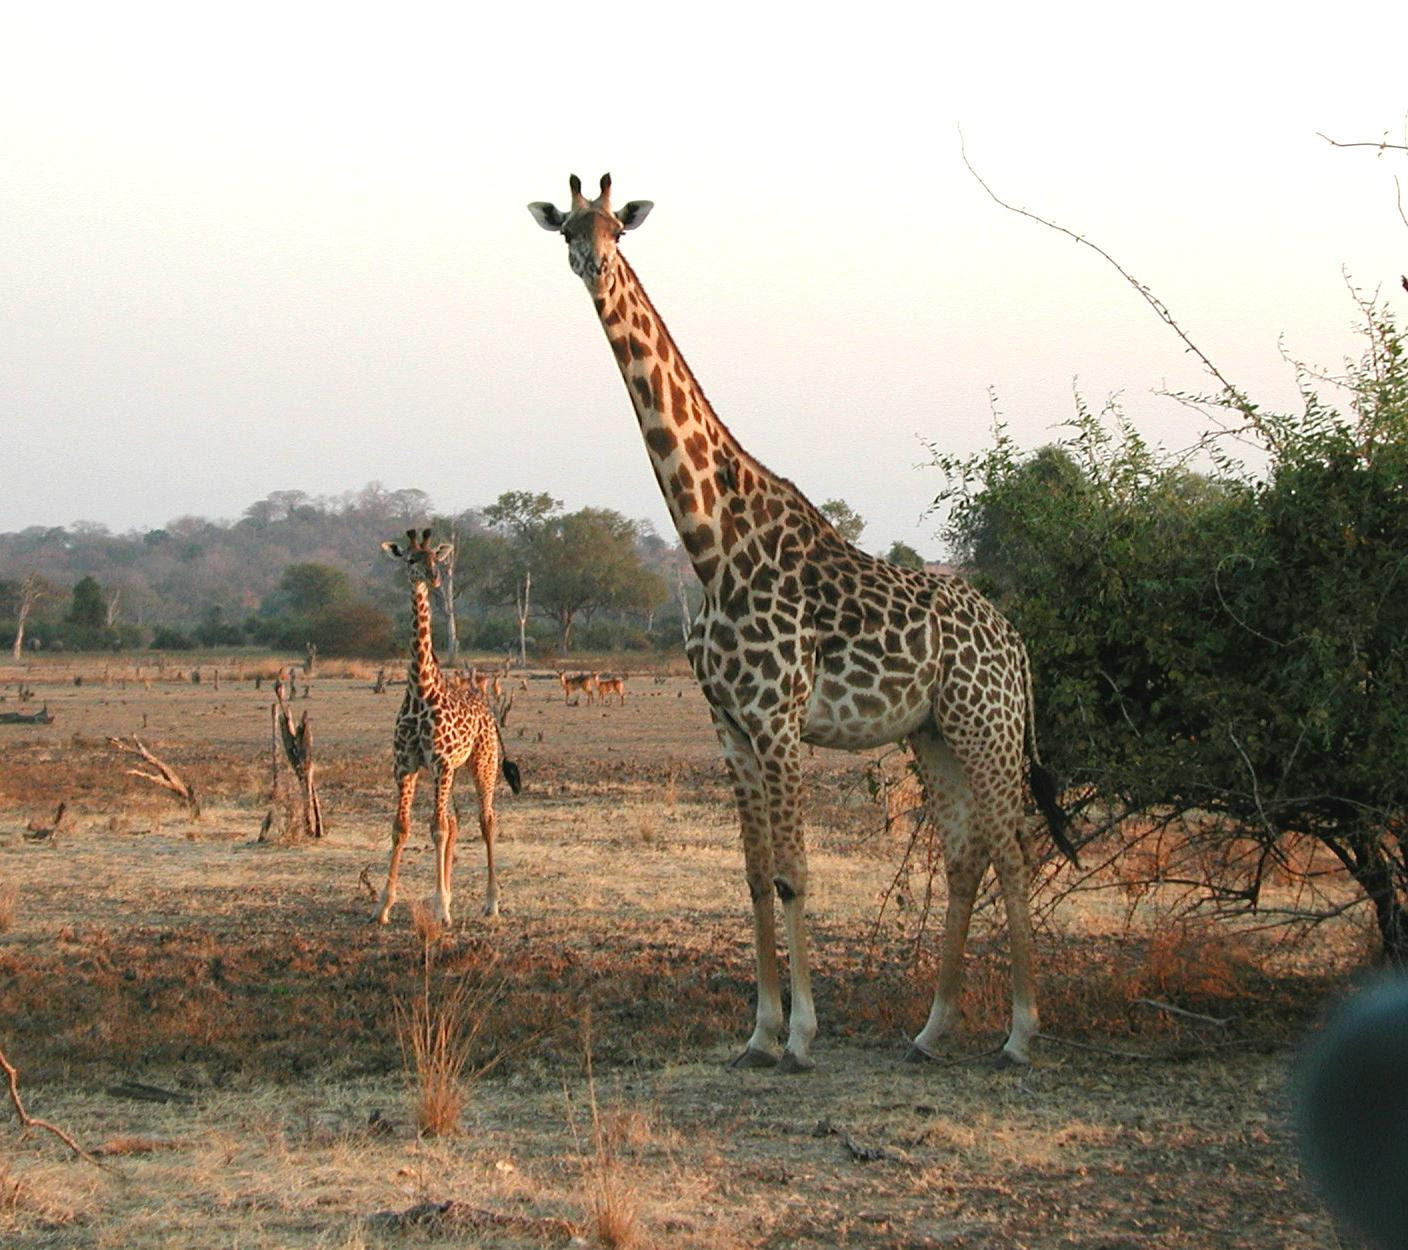 http://upload.wikimedia.org/wikipedia/commons/6/68/Giraffen.jpg